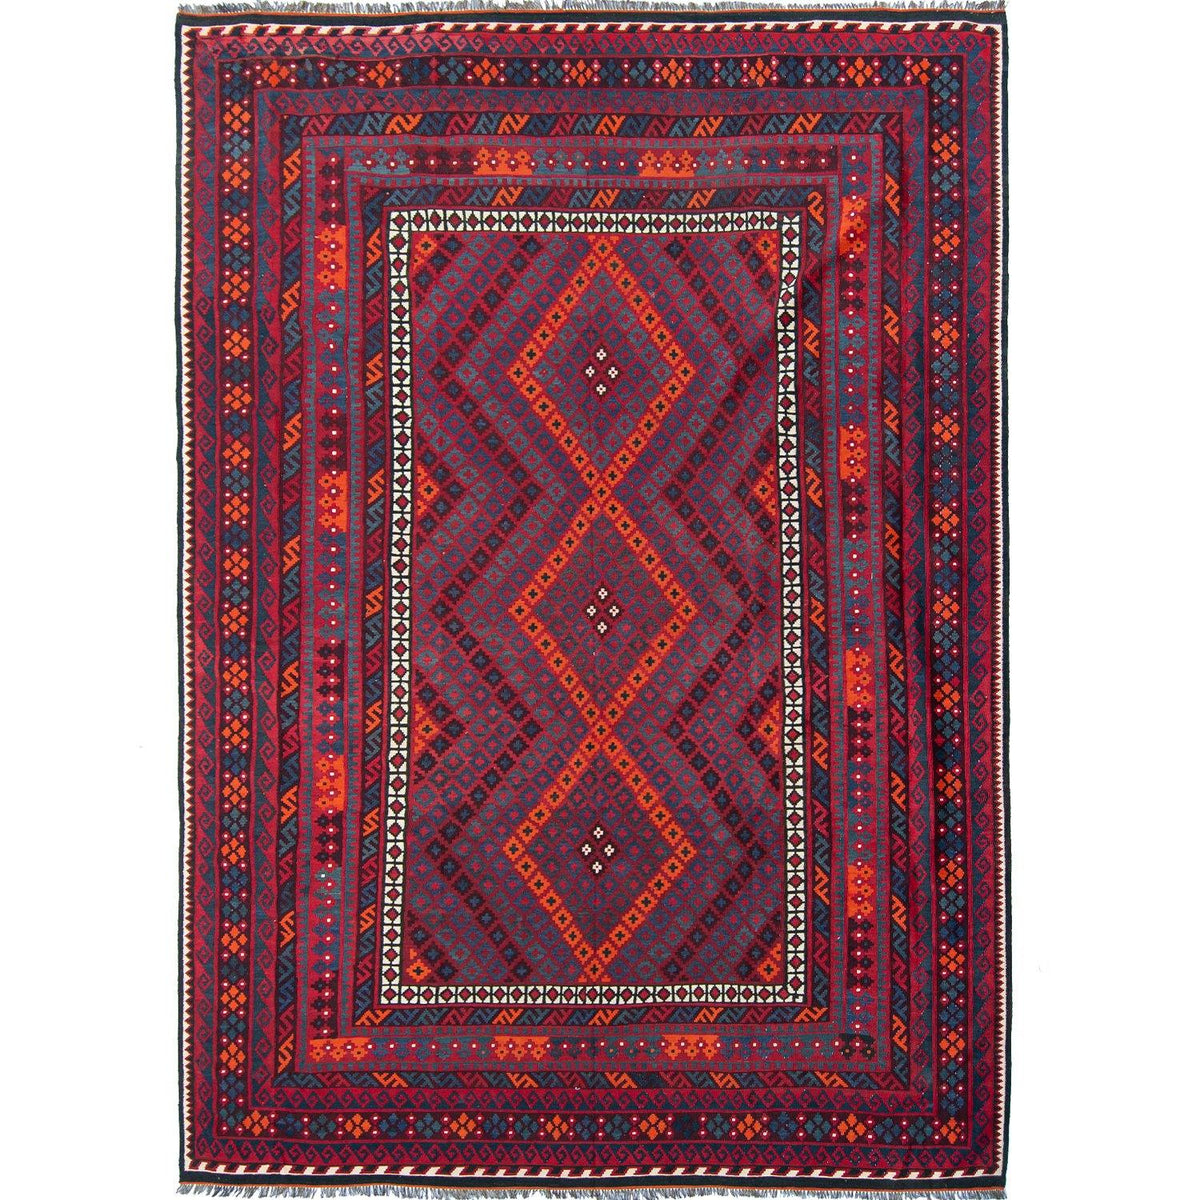 Fine Hand-woven 100% Wool Kilim Rug 285cm x 400cm Persian-Rug | House-of-Haghi | NewMarket | Auckland | NZ | Handmade Persian Rugs | Hand Knotted Persian Rugs